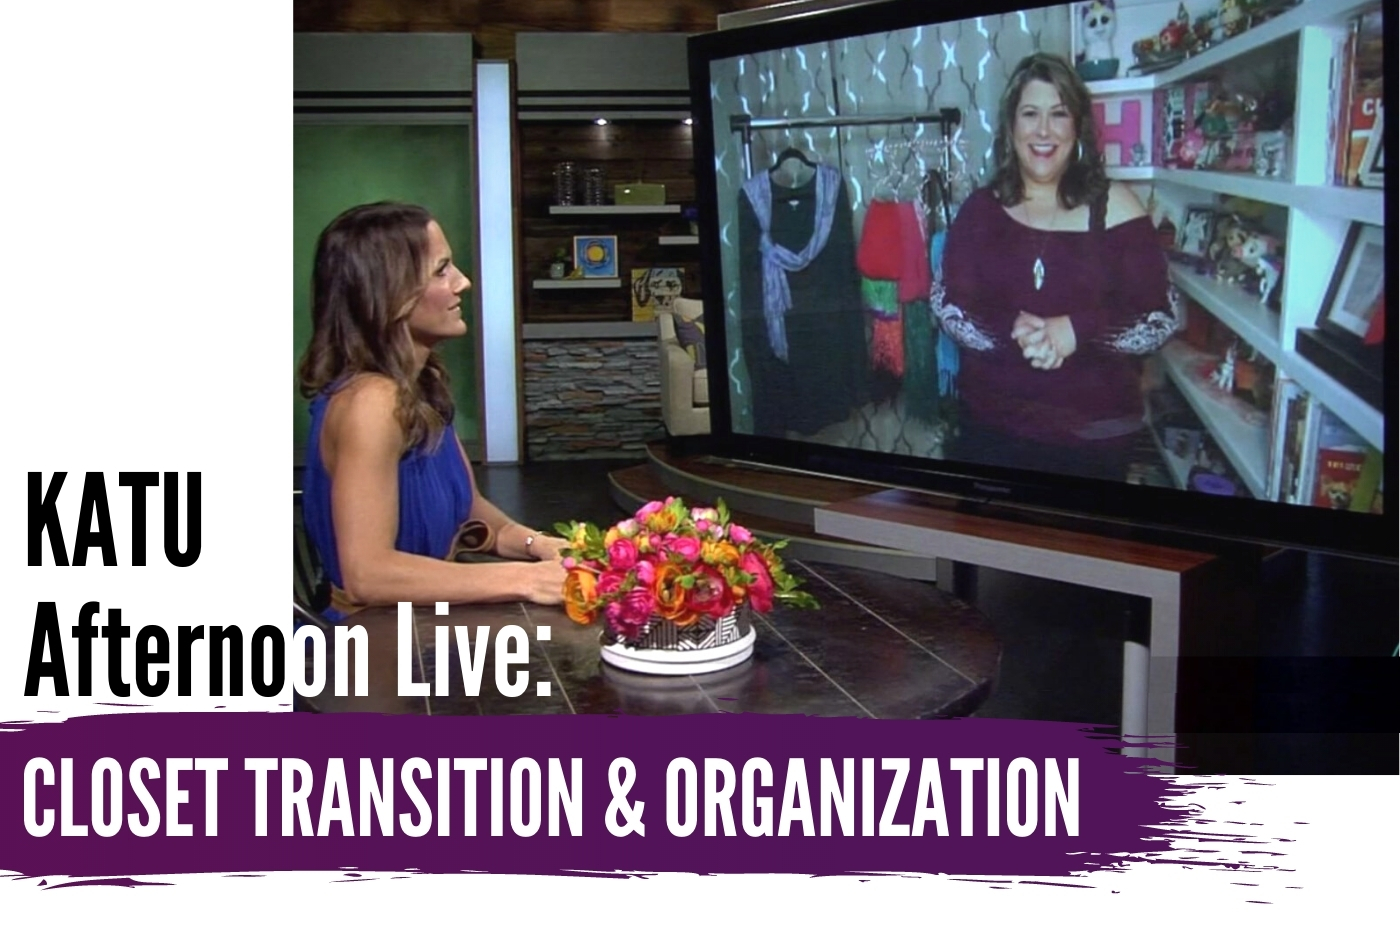 KATU Afternoon Live: Transition Your Closet From Summer To Fall